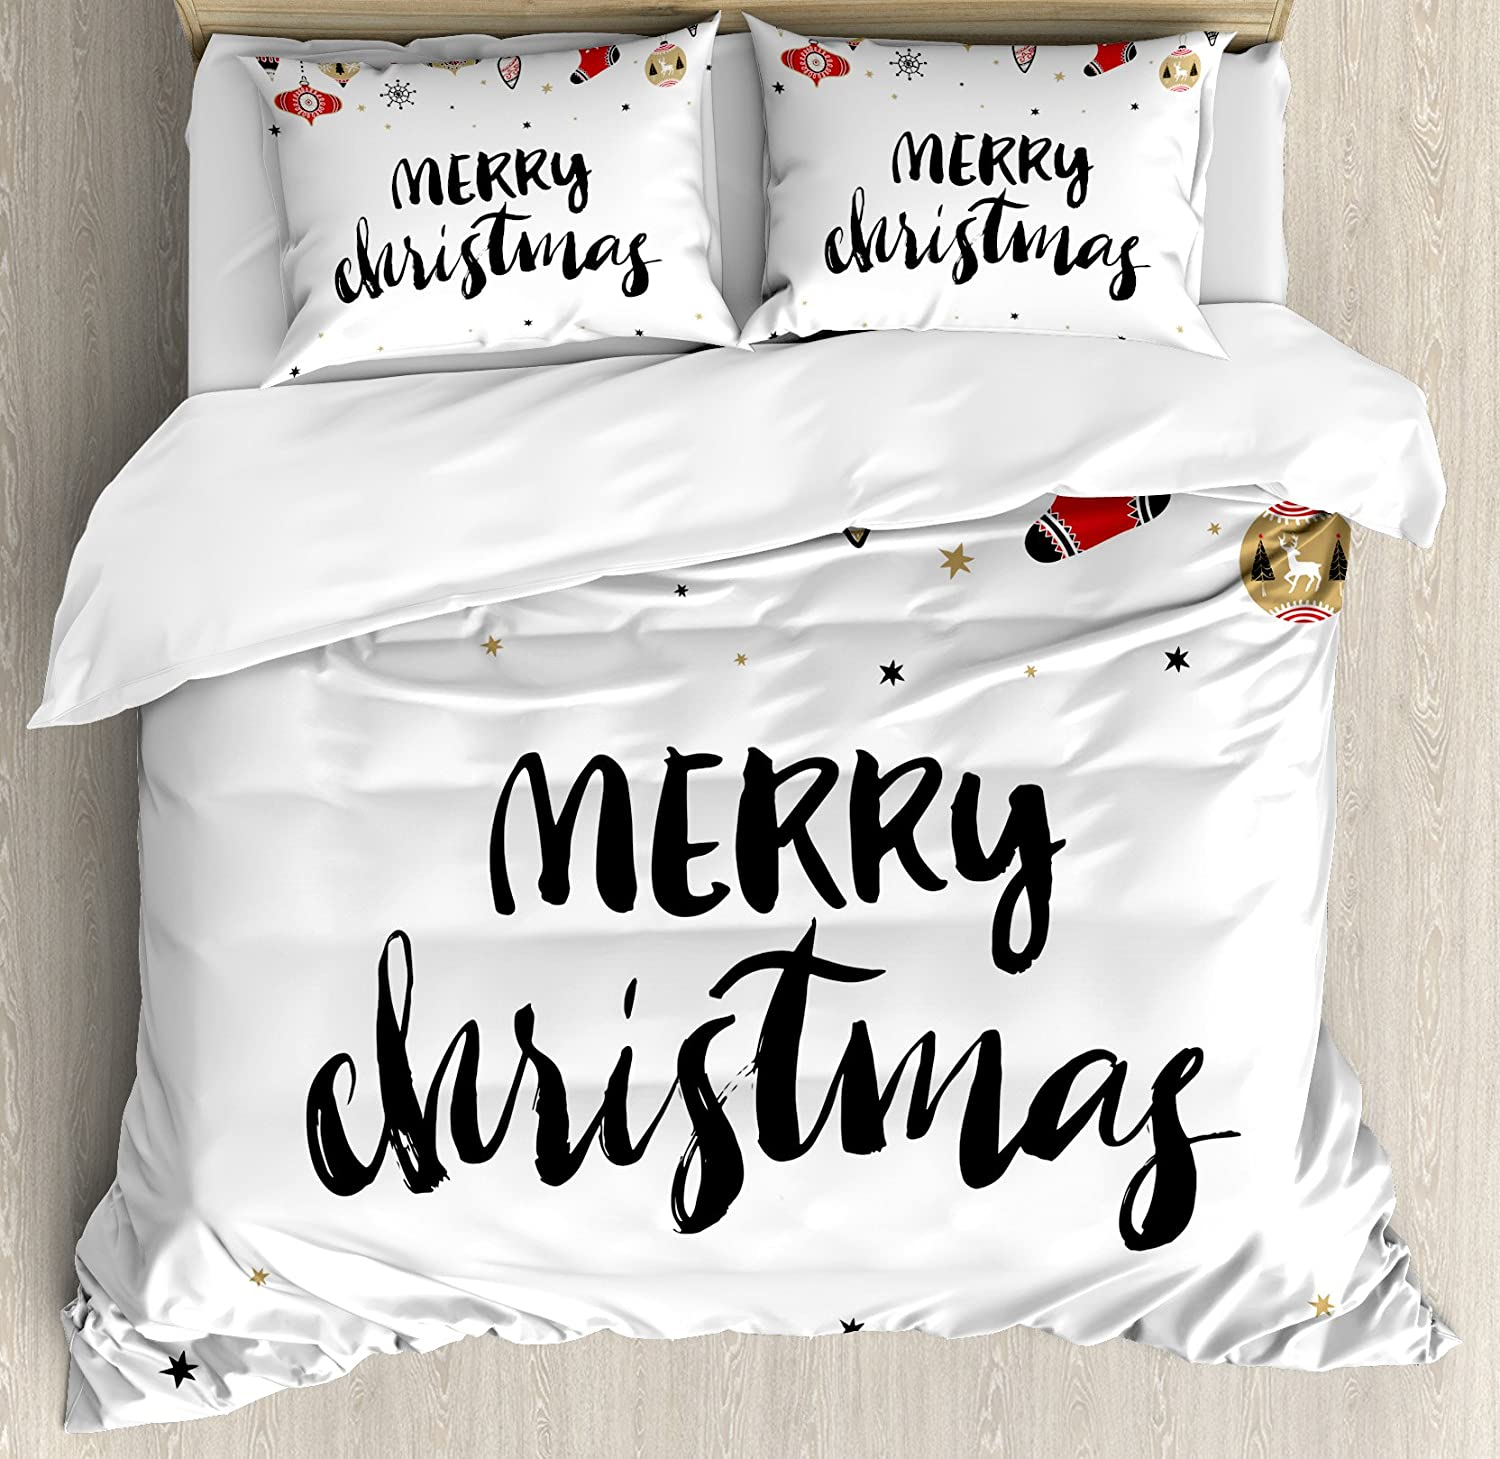 Ambesonne Christmas Duvet Cover Set, Merry Xmas Words Modern Brush Lettering Creative Noel Phrase Inspirational Print, Decorative 3 Piece Bedding Set with 2 Pillow Shams, Queen Size, Charcoal